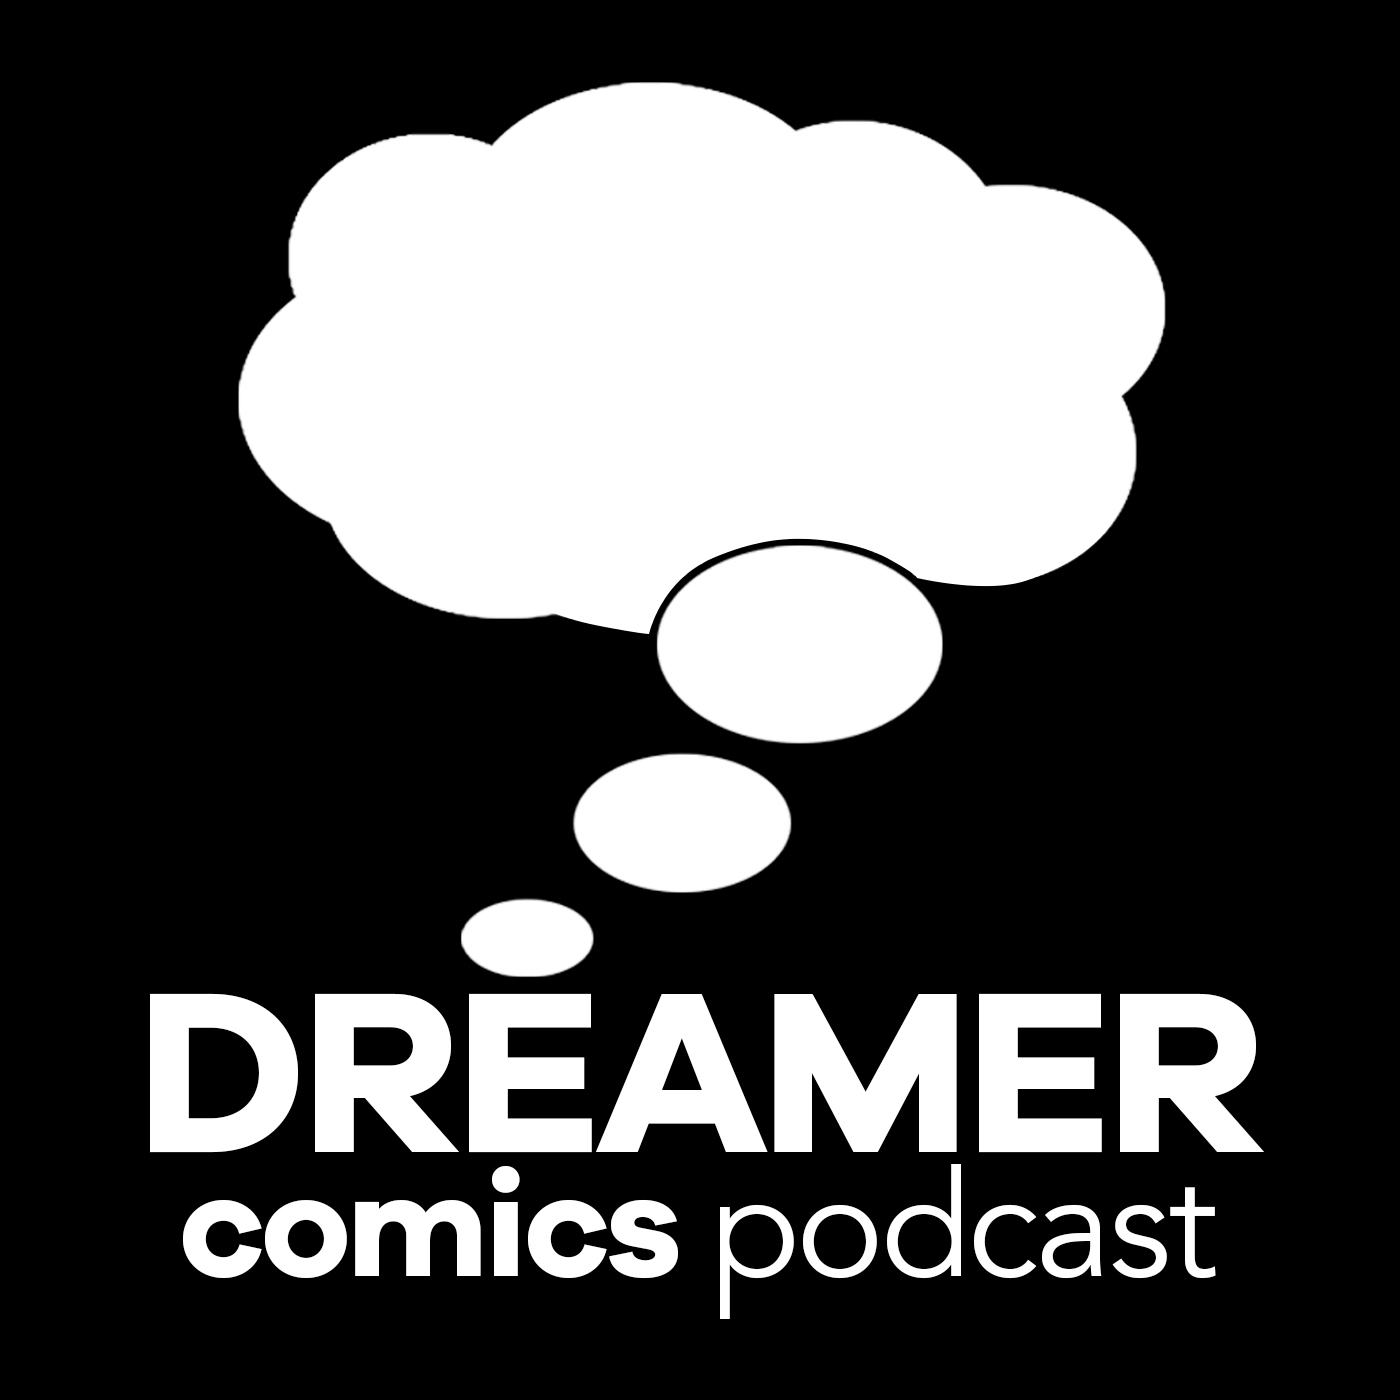 Dreamer Comics Podcast show art